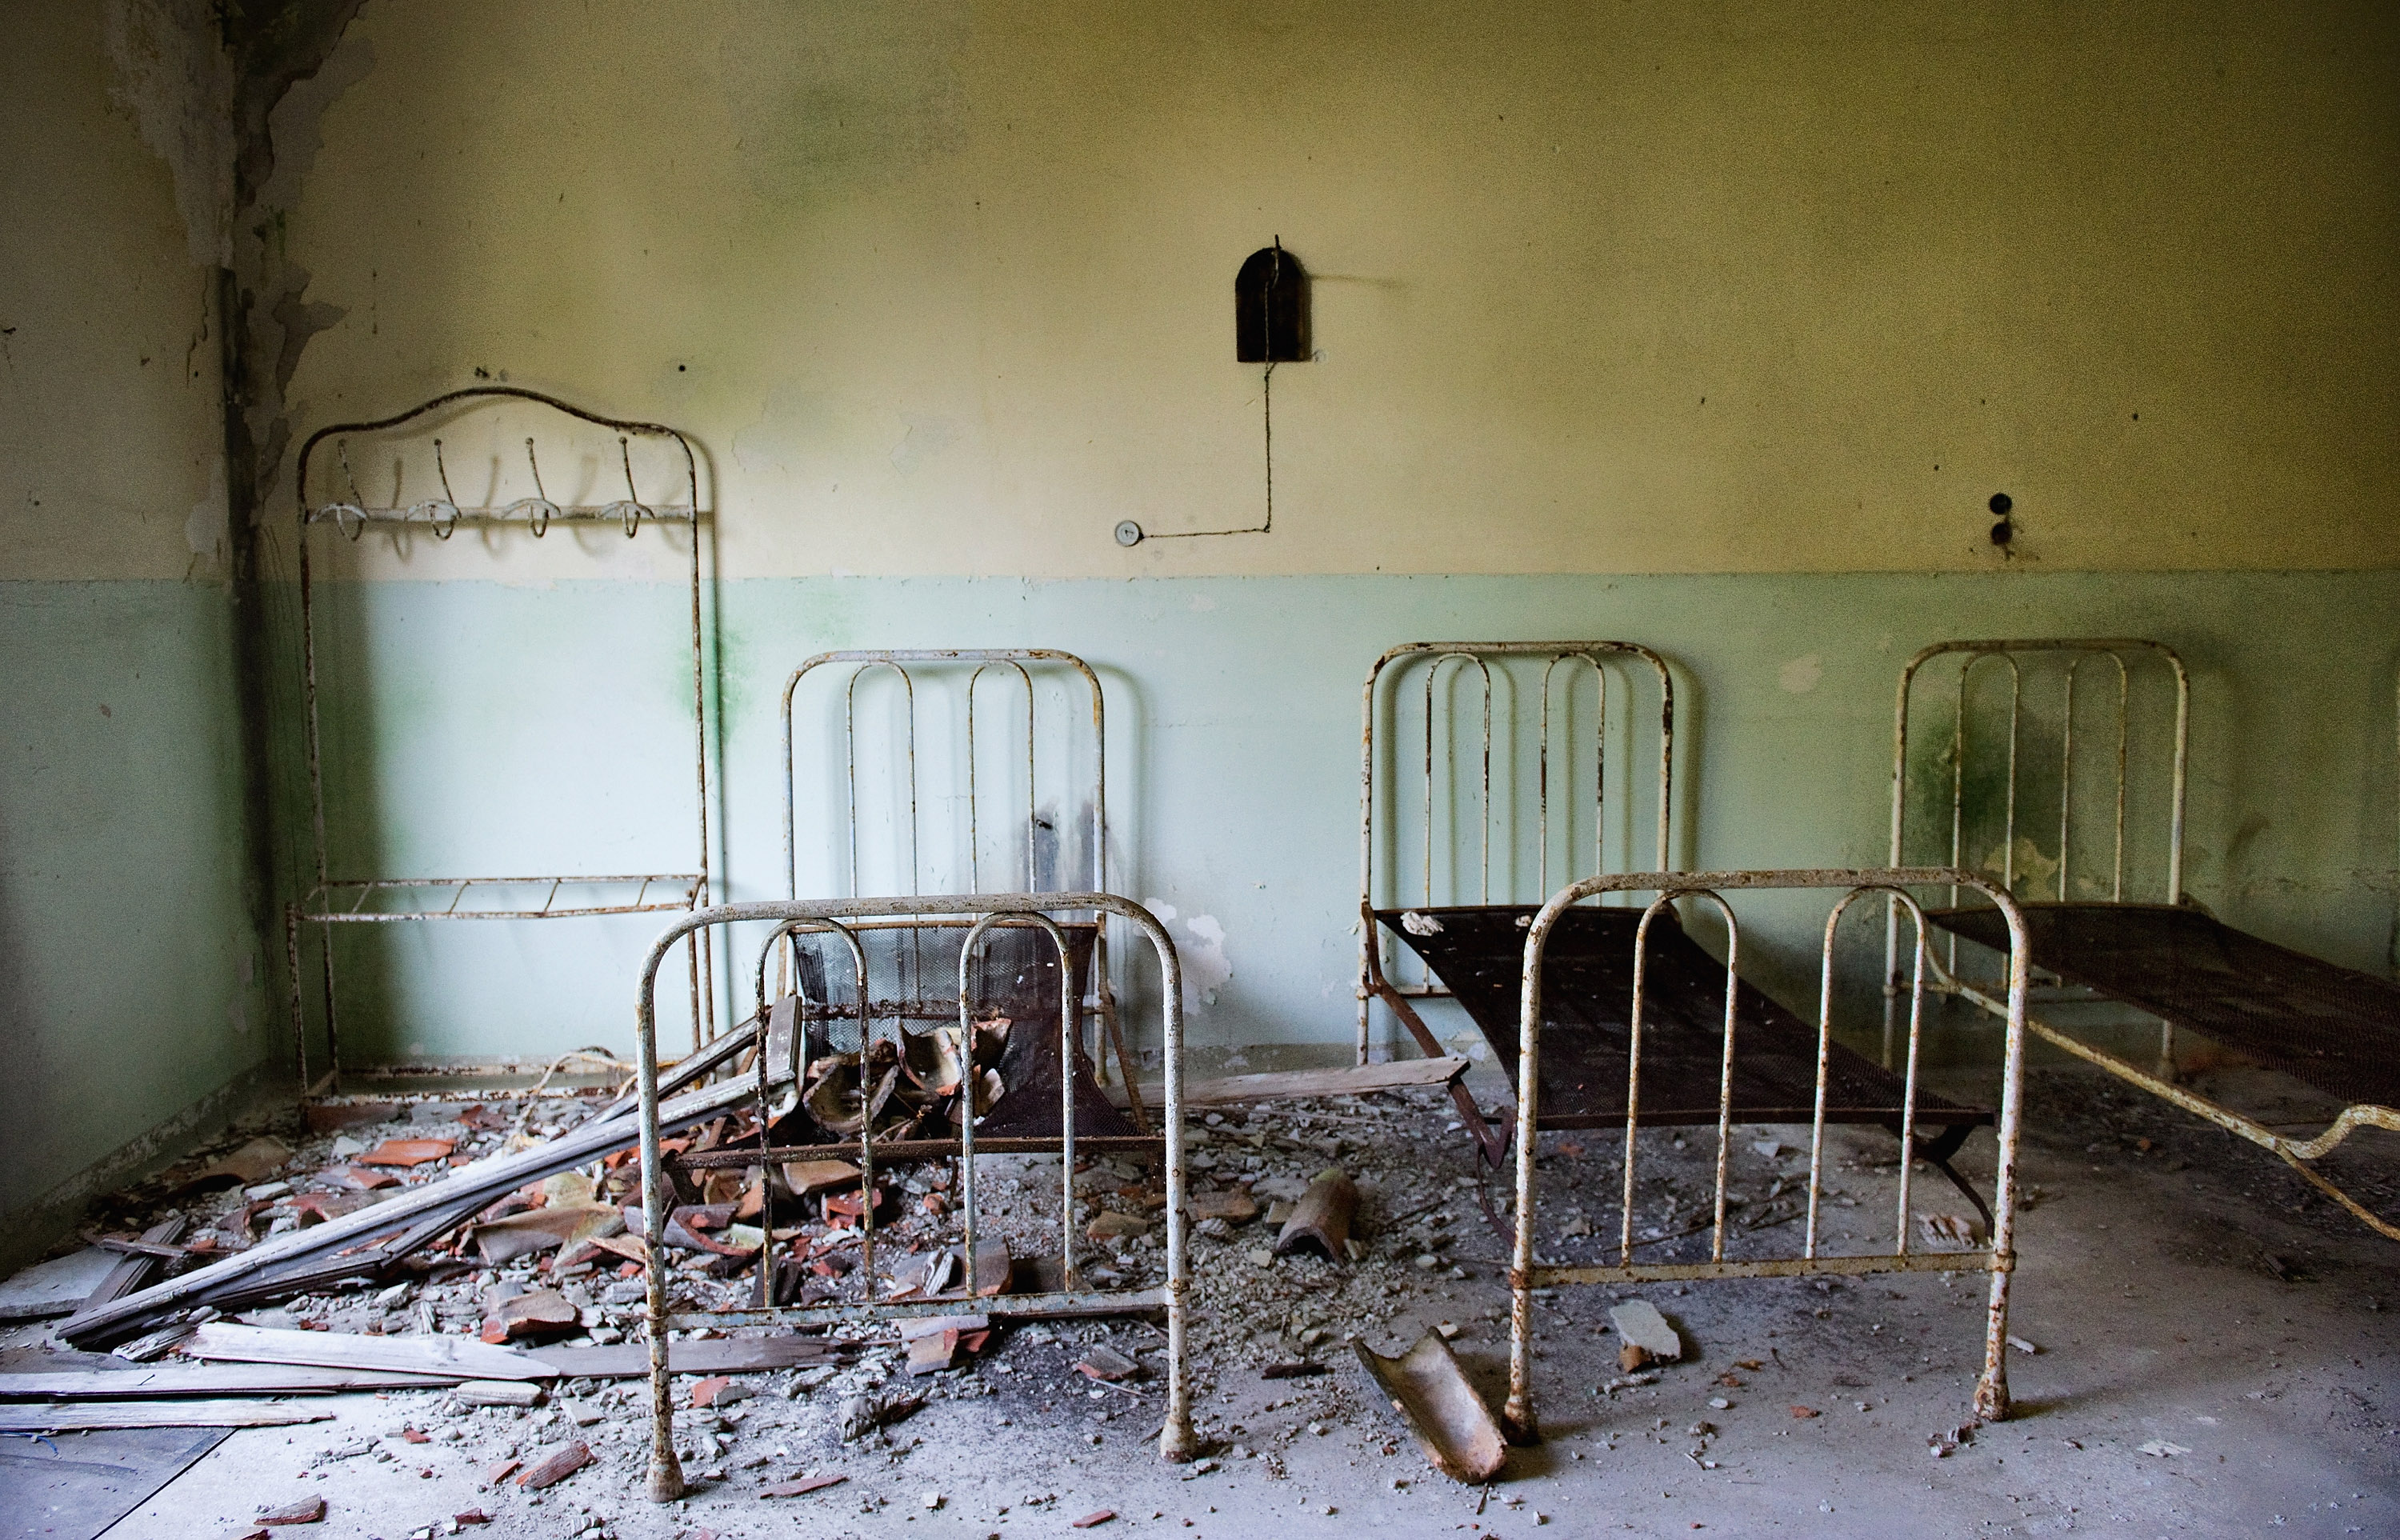 VENICE, ITALY - AUGUST 27:   Beds and furniture remain in one of the dormitories in the psychiatric ward of the abandoned Hospital of Poveglia on August 27, 2011 in Venice, Italy. The island of Poveglia, with its ruined hospital and plague burial grounds, is said to be the most haunted location in the world. The area is located within a multi-million dollar piece of real estate but is deserted and off limits to the public. The dark and derelict forbidding shores are only minutes away from the glamour of the Venice Film Festival on the Lido.  (Photo by Marco Secchi/Getty Images)